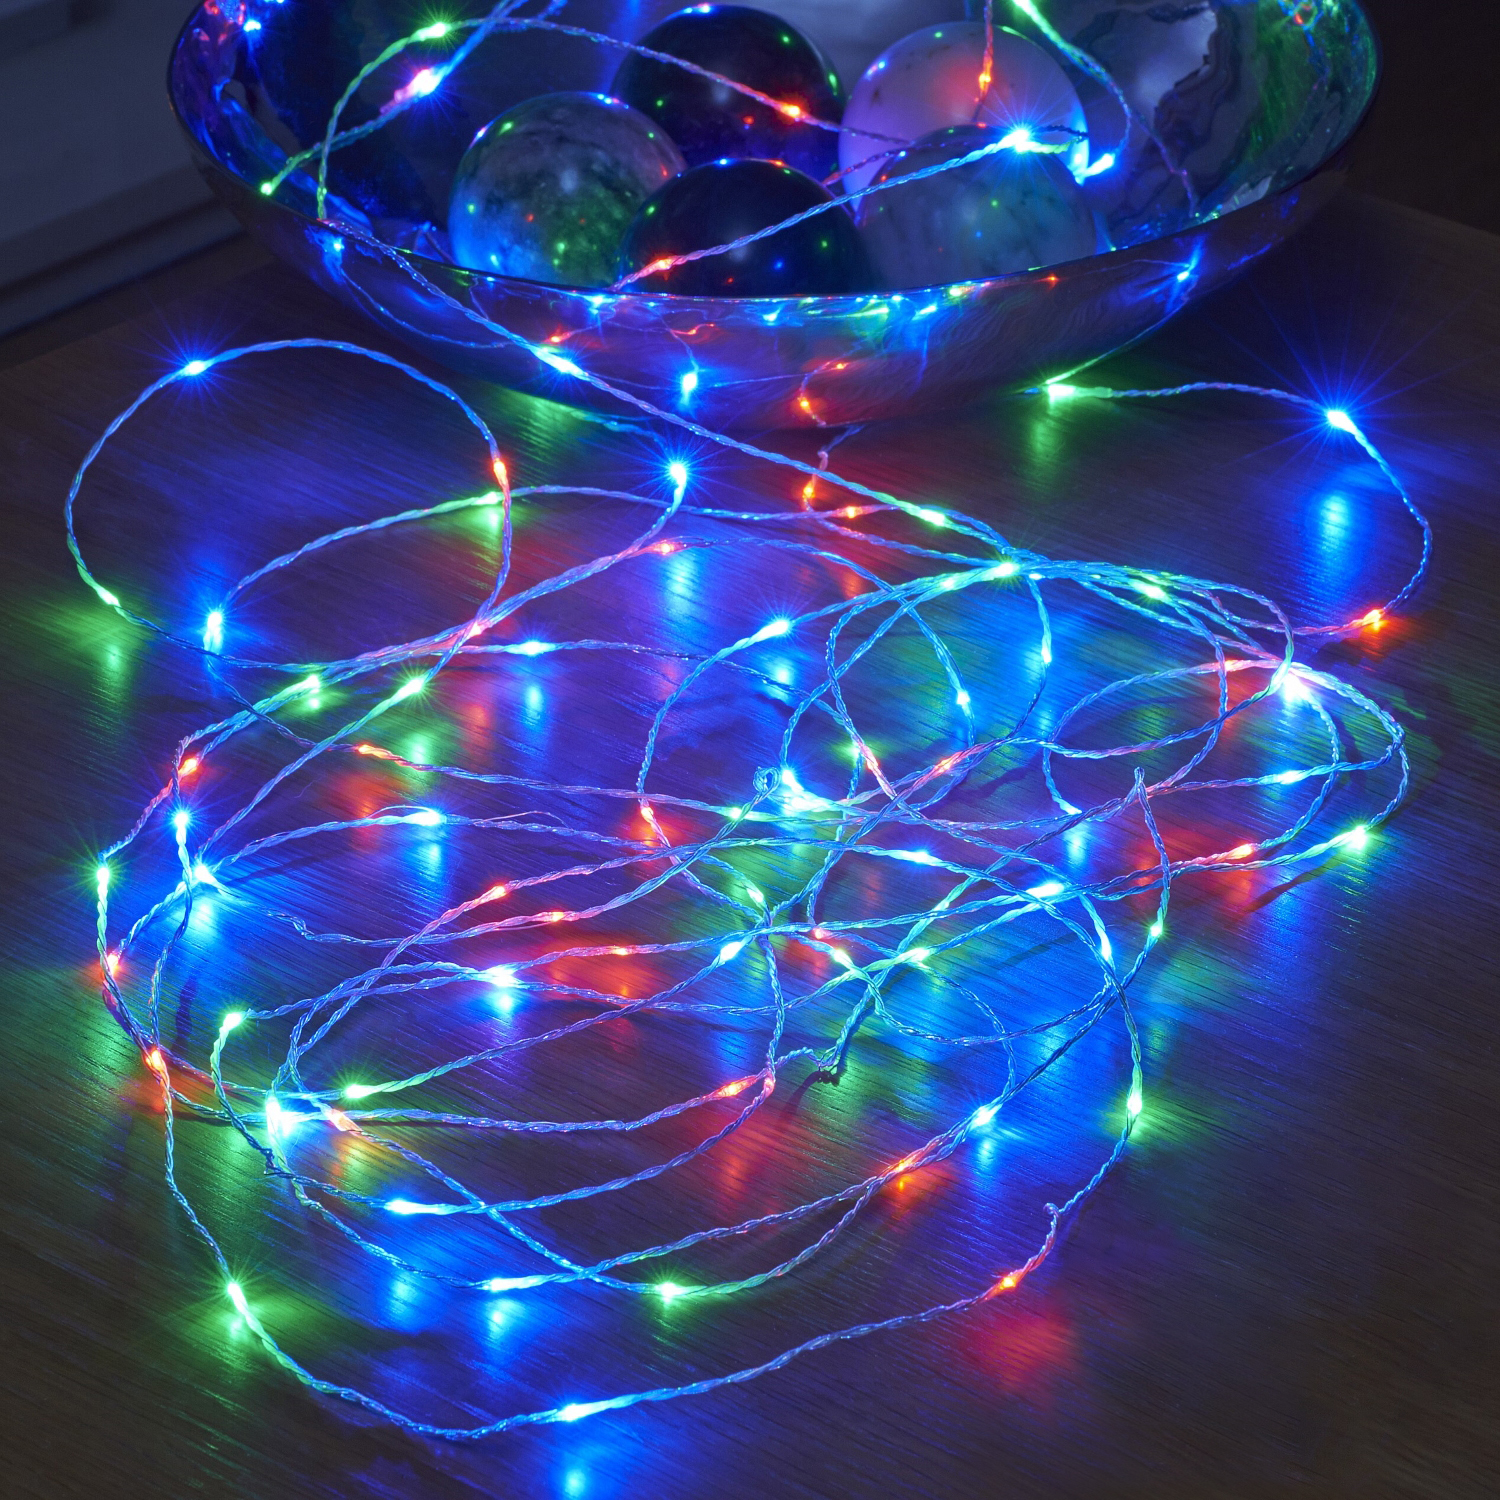 String Led Lights Battery Operated : Micro LED String Lights - Battery Operated - Remote Controlled - Outdoor - RGB - 5M - Auraglow ...